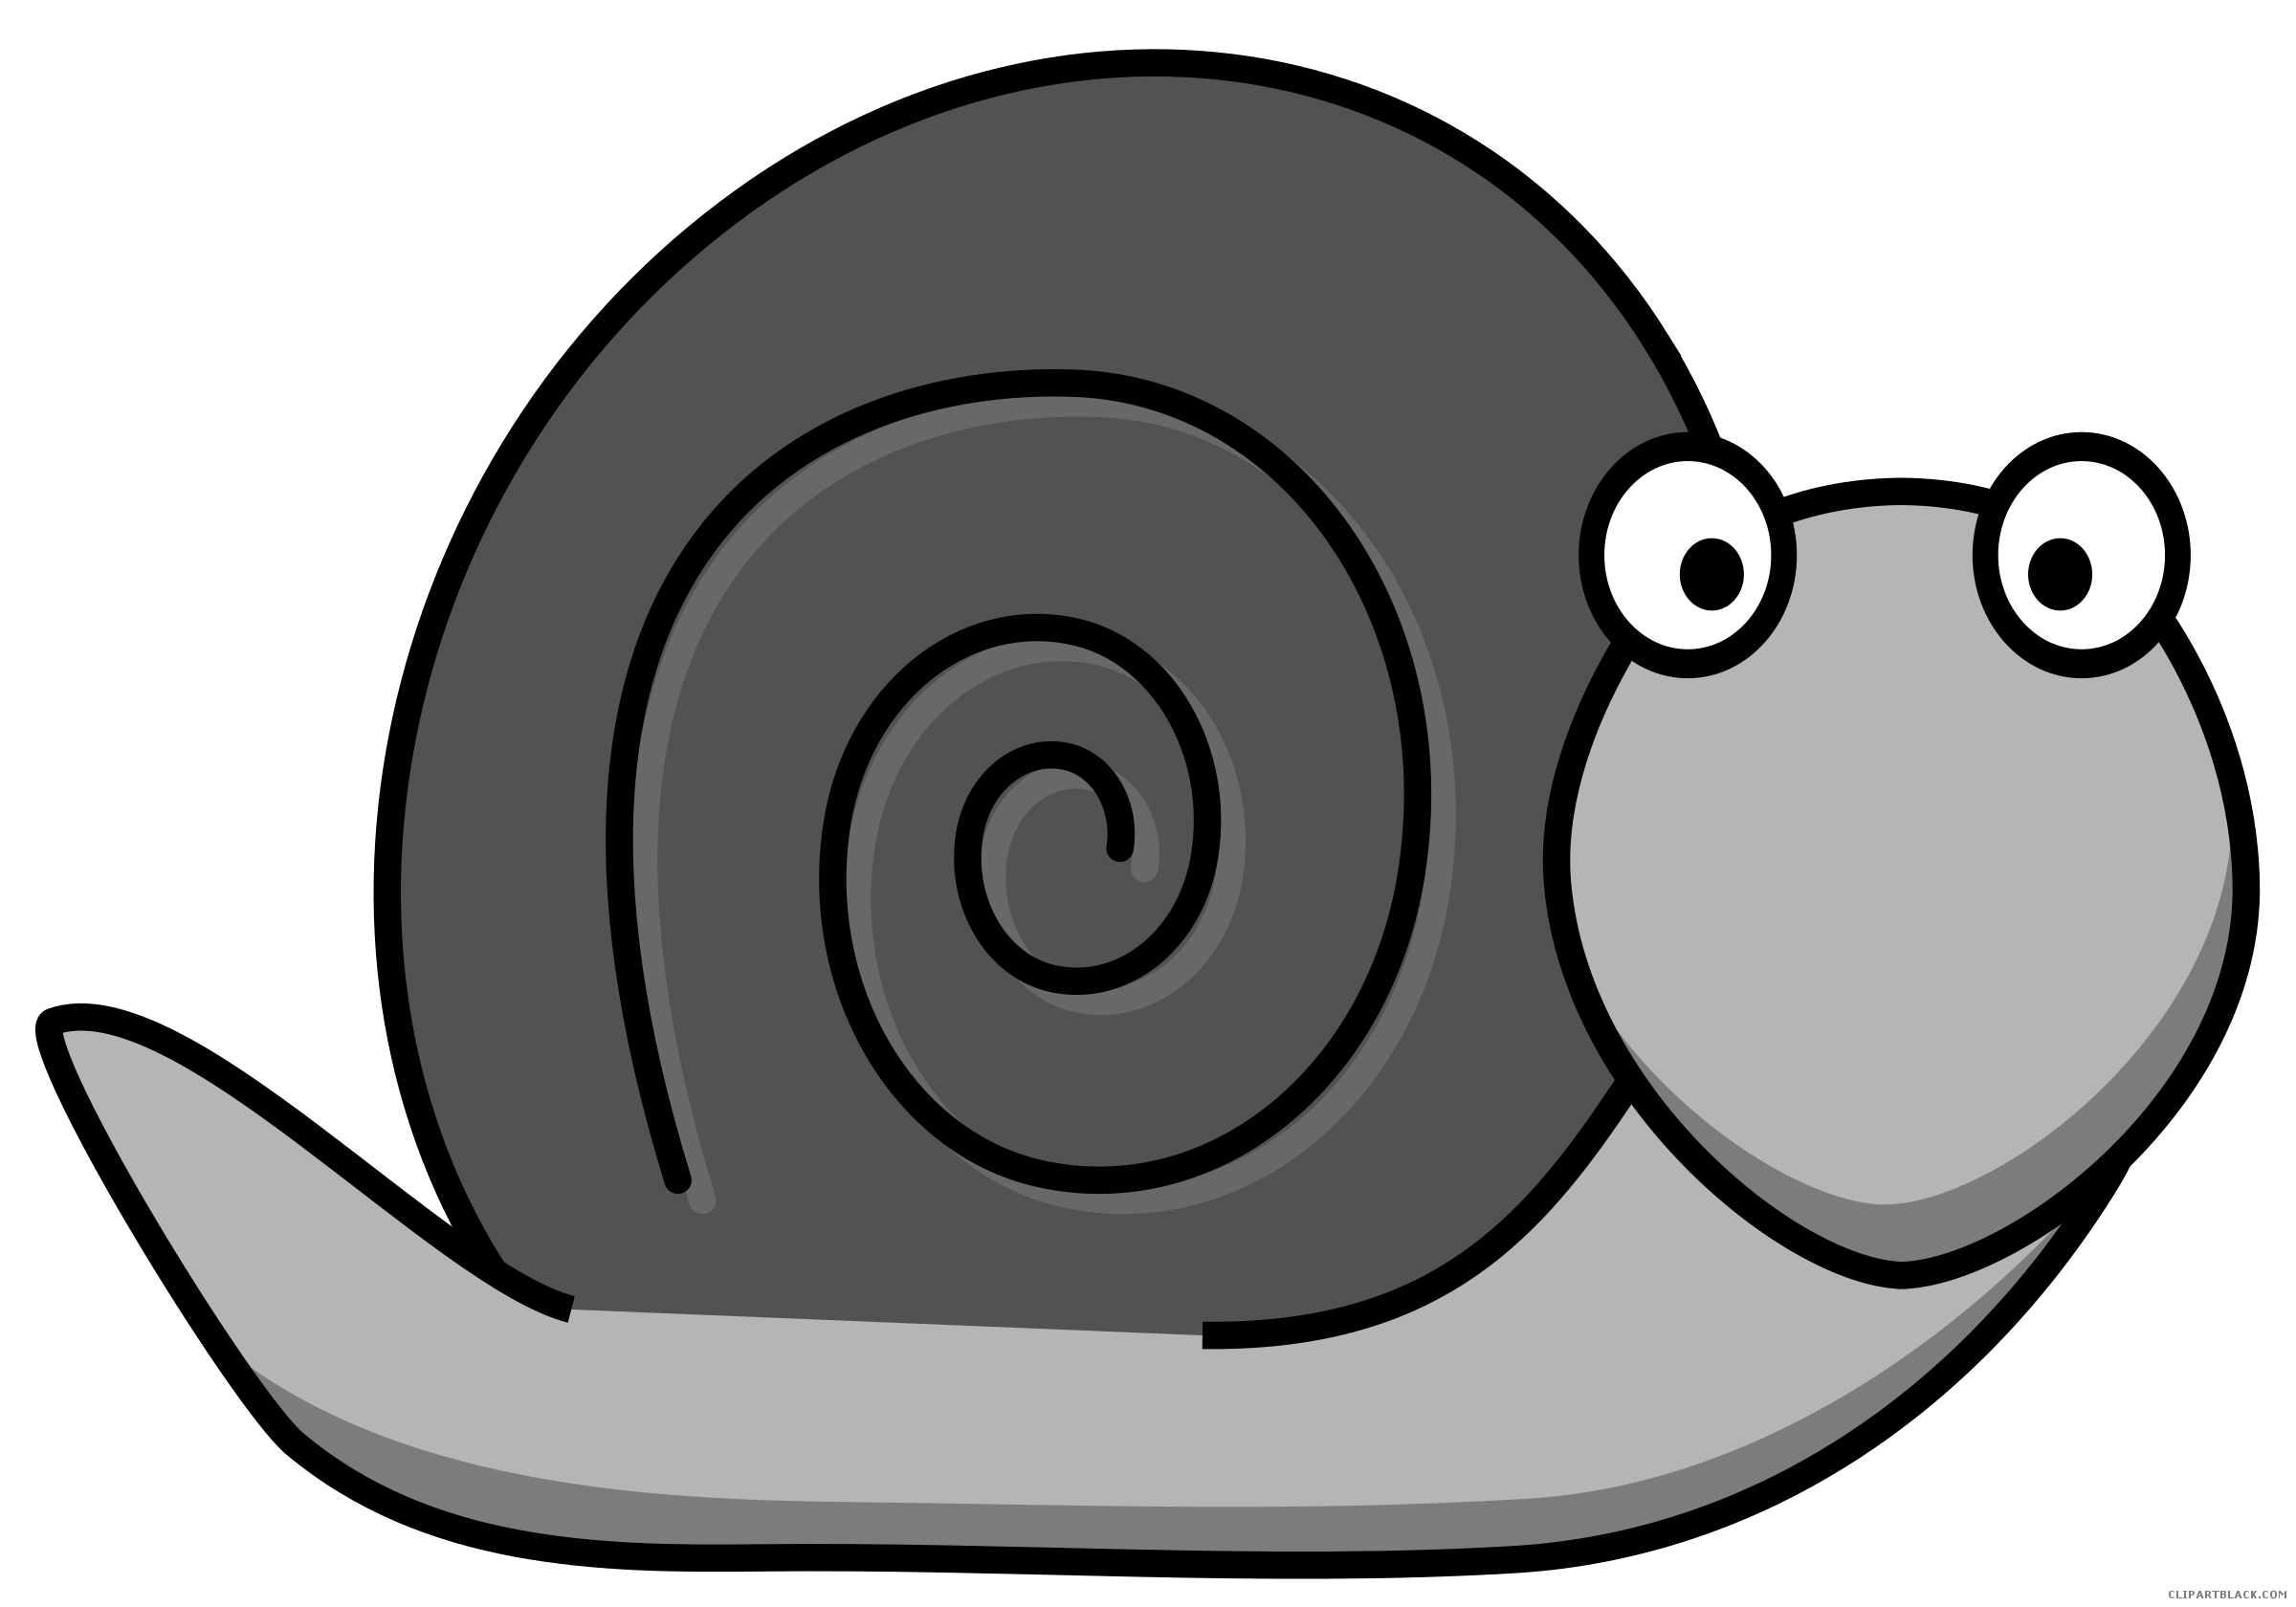 Cartoon snail animal free. Horseshoe clipart mustang football